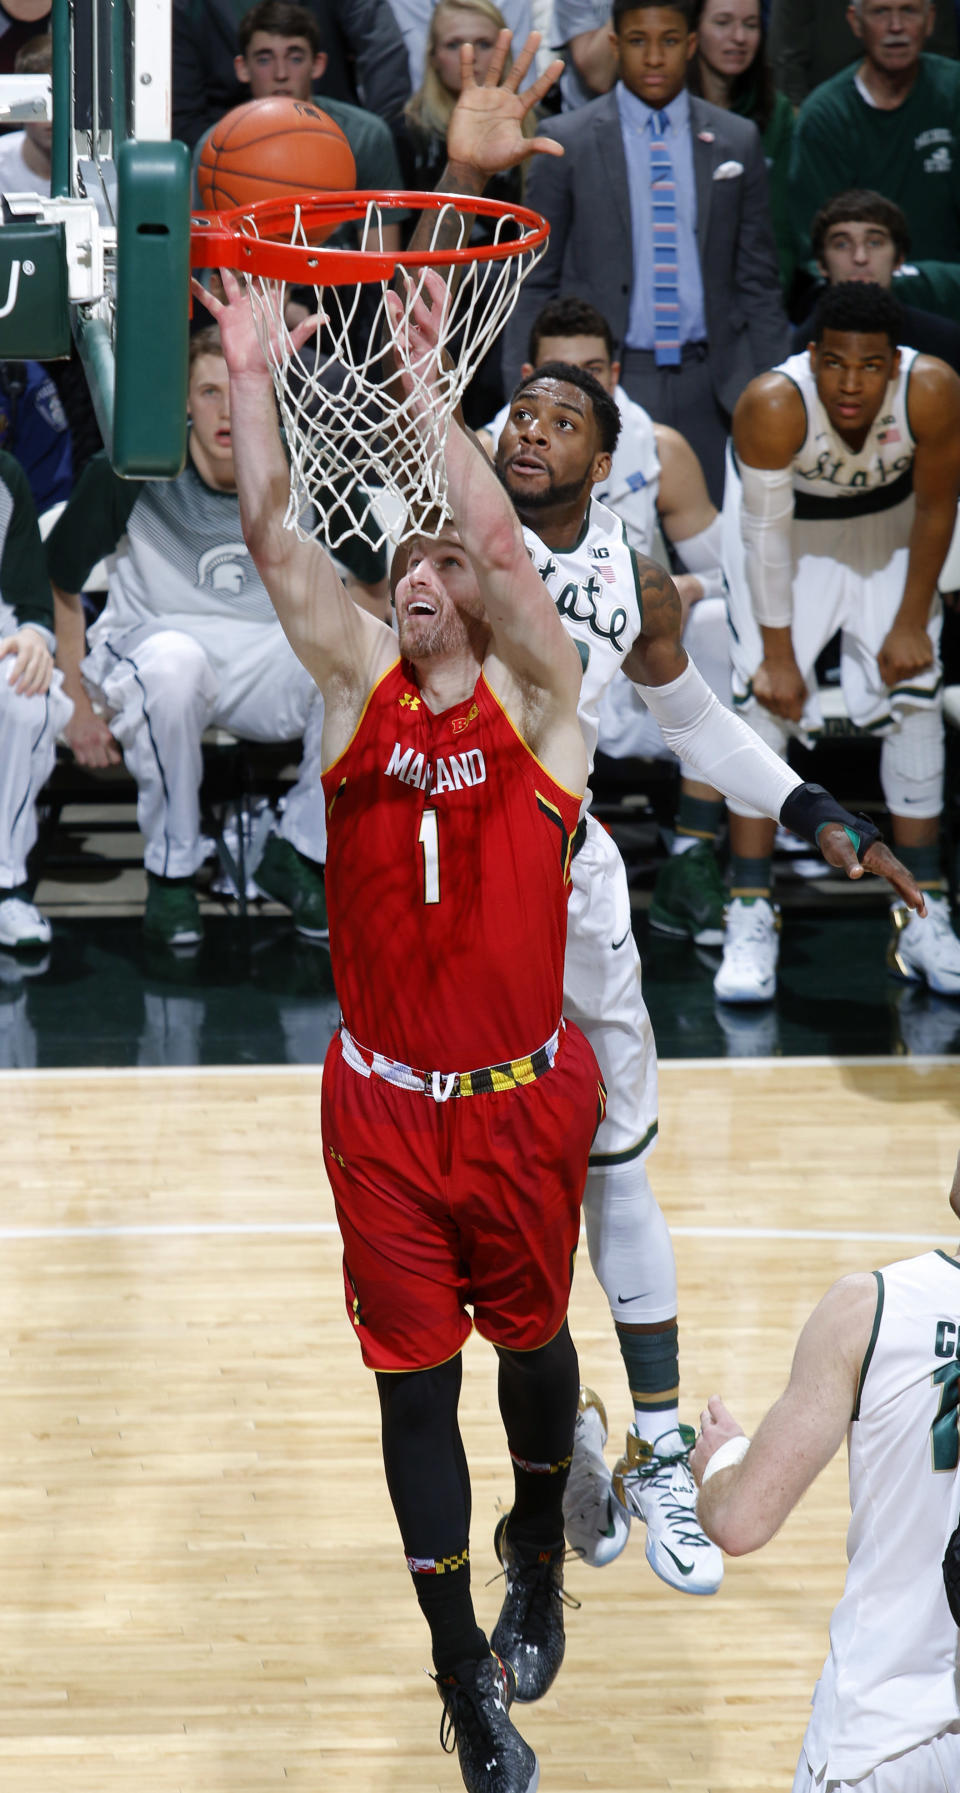 Maryland's Evan Smotrycz (1) shoots in front of Michigan State's Branden Dawson during the first half of an NCAA college basketball game, Tuesday, Dec. 30, 2014, in East Lansing, Mich. (AP Photo/Al Goldis)